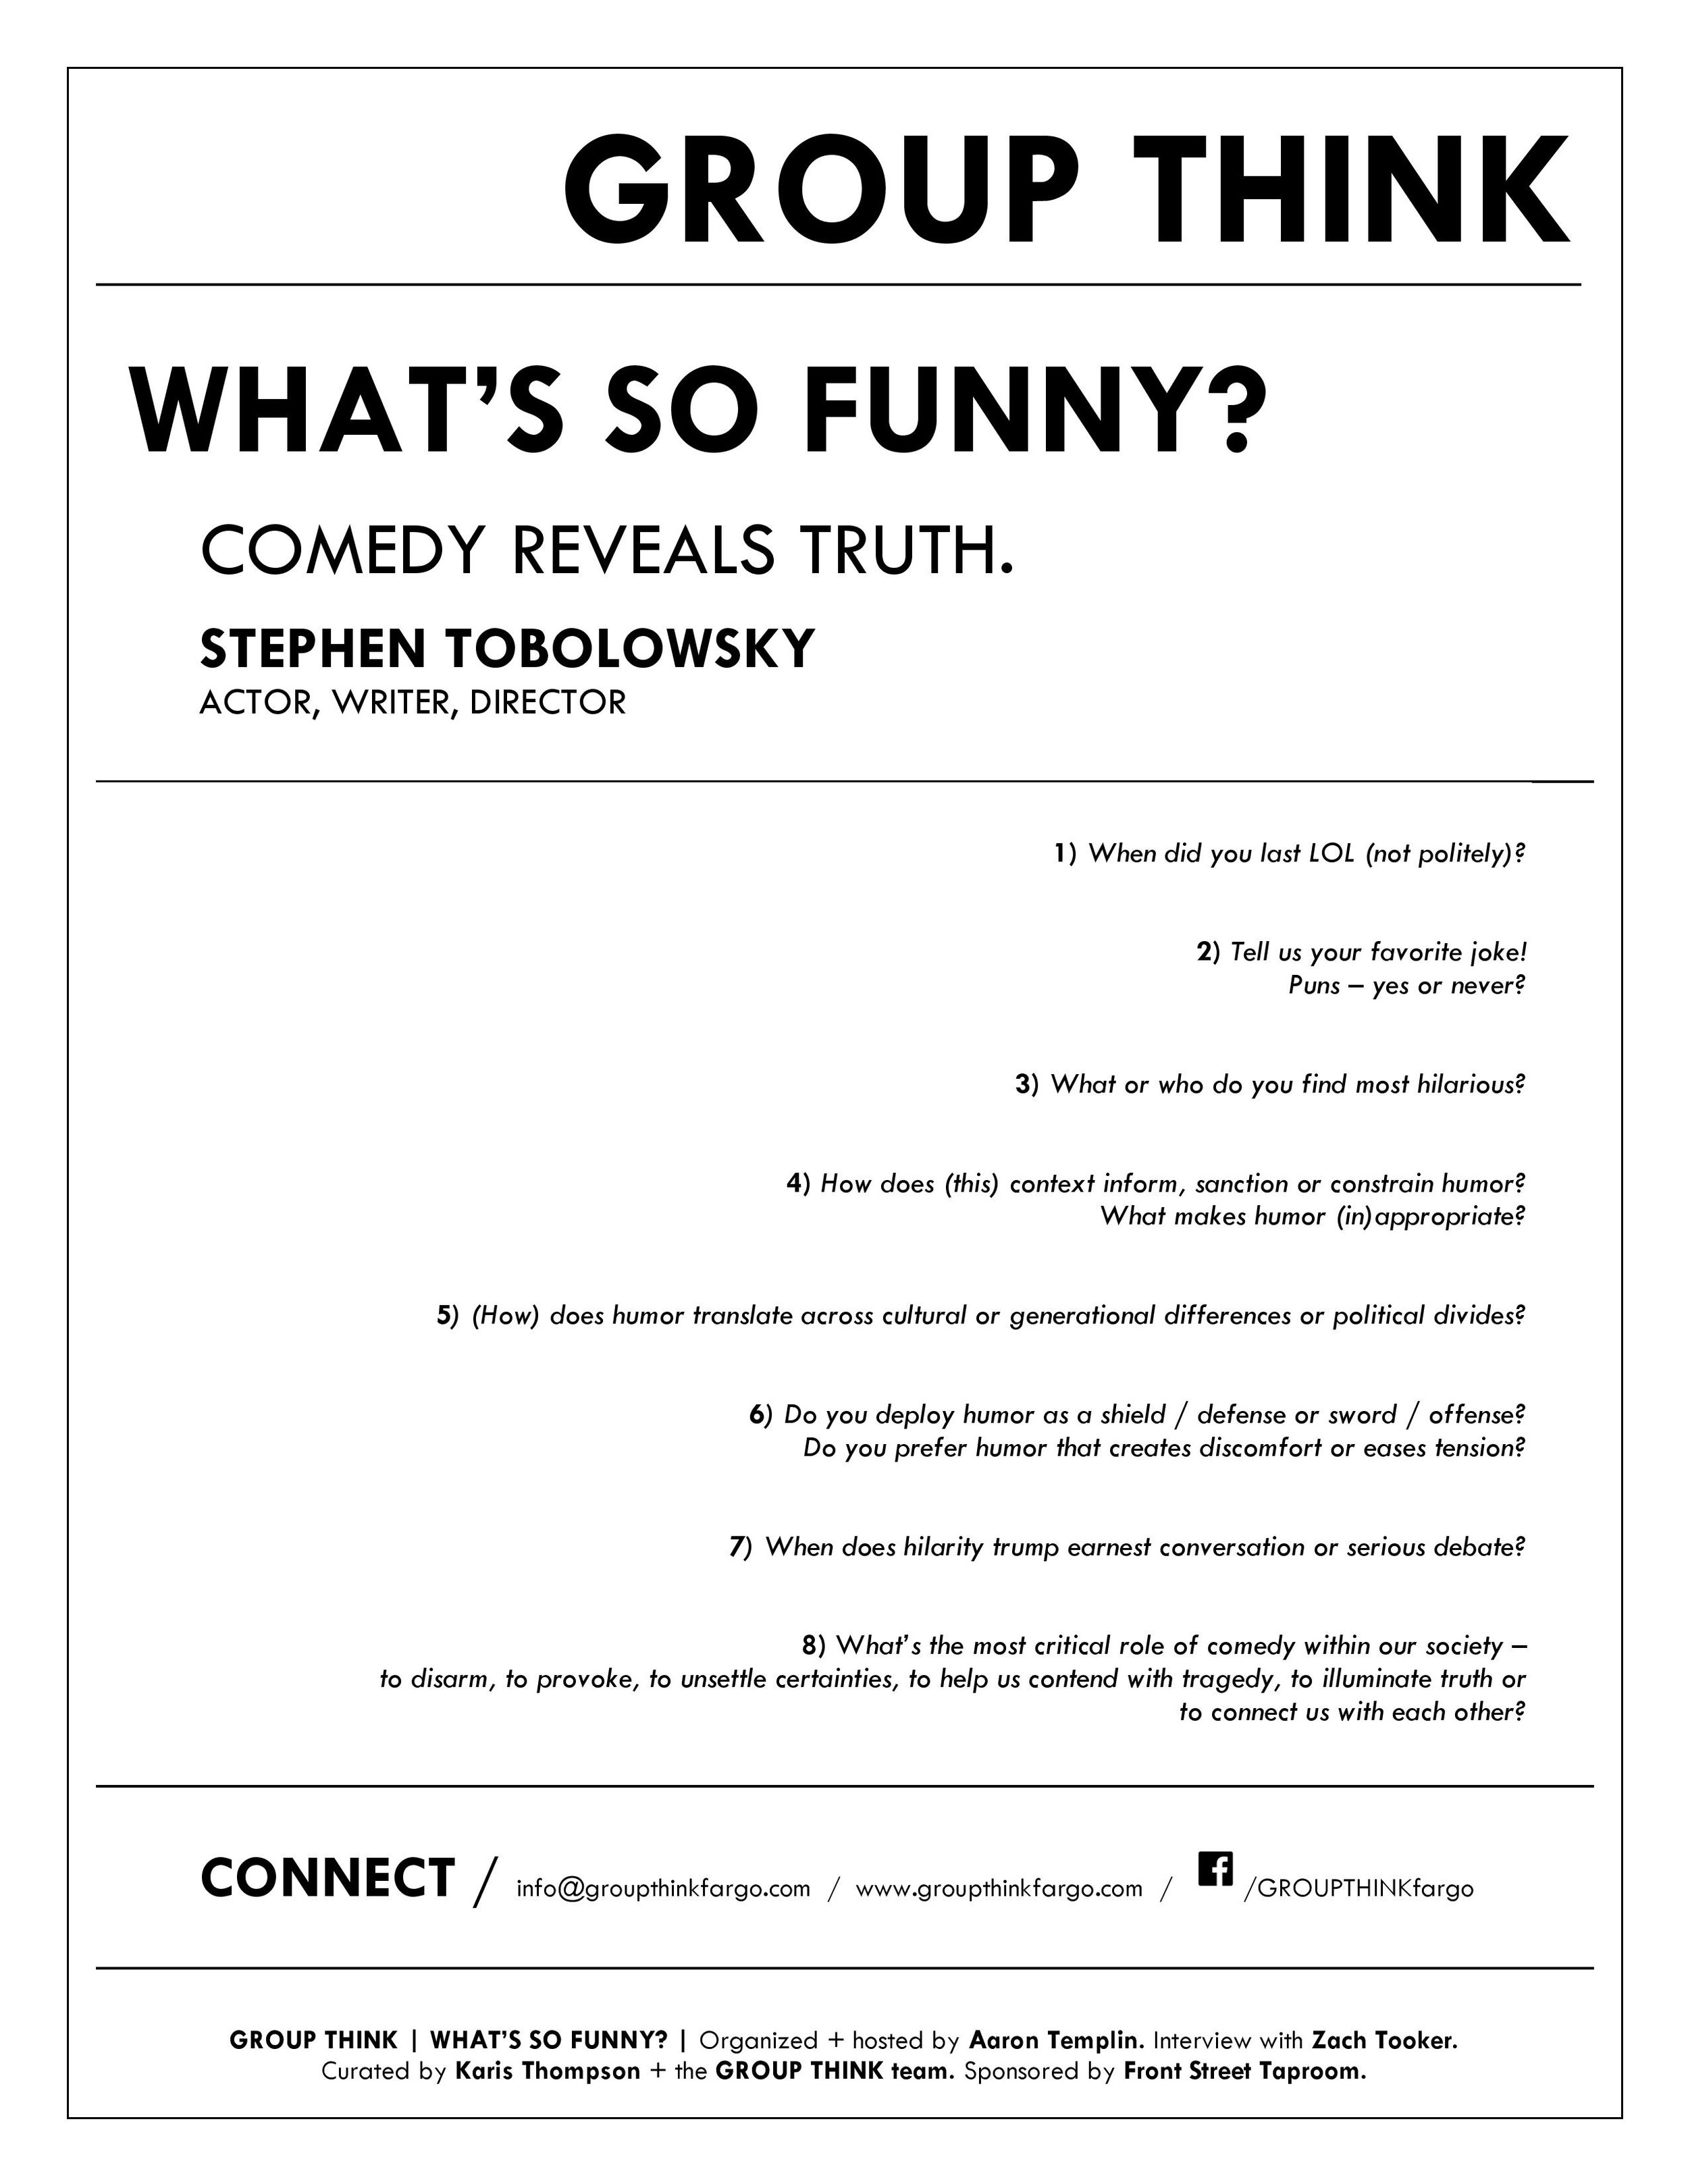 GROUP THINK - 04.2019 - WHAT'S SO FUNNY? handout-1.jpg